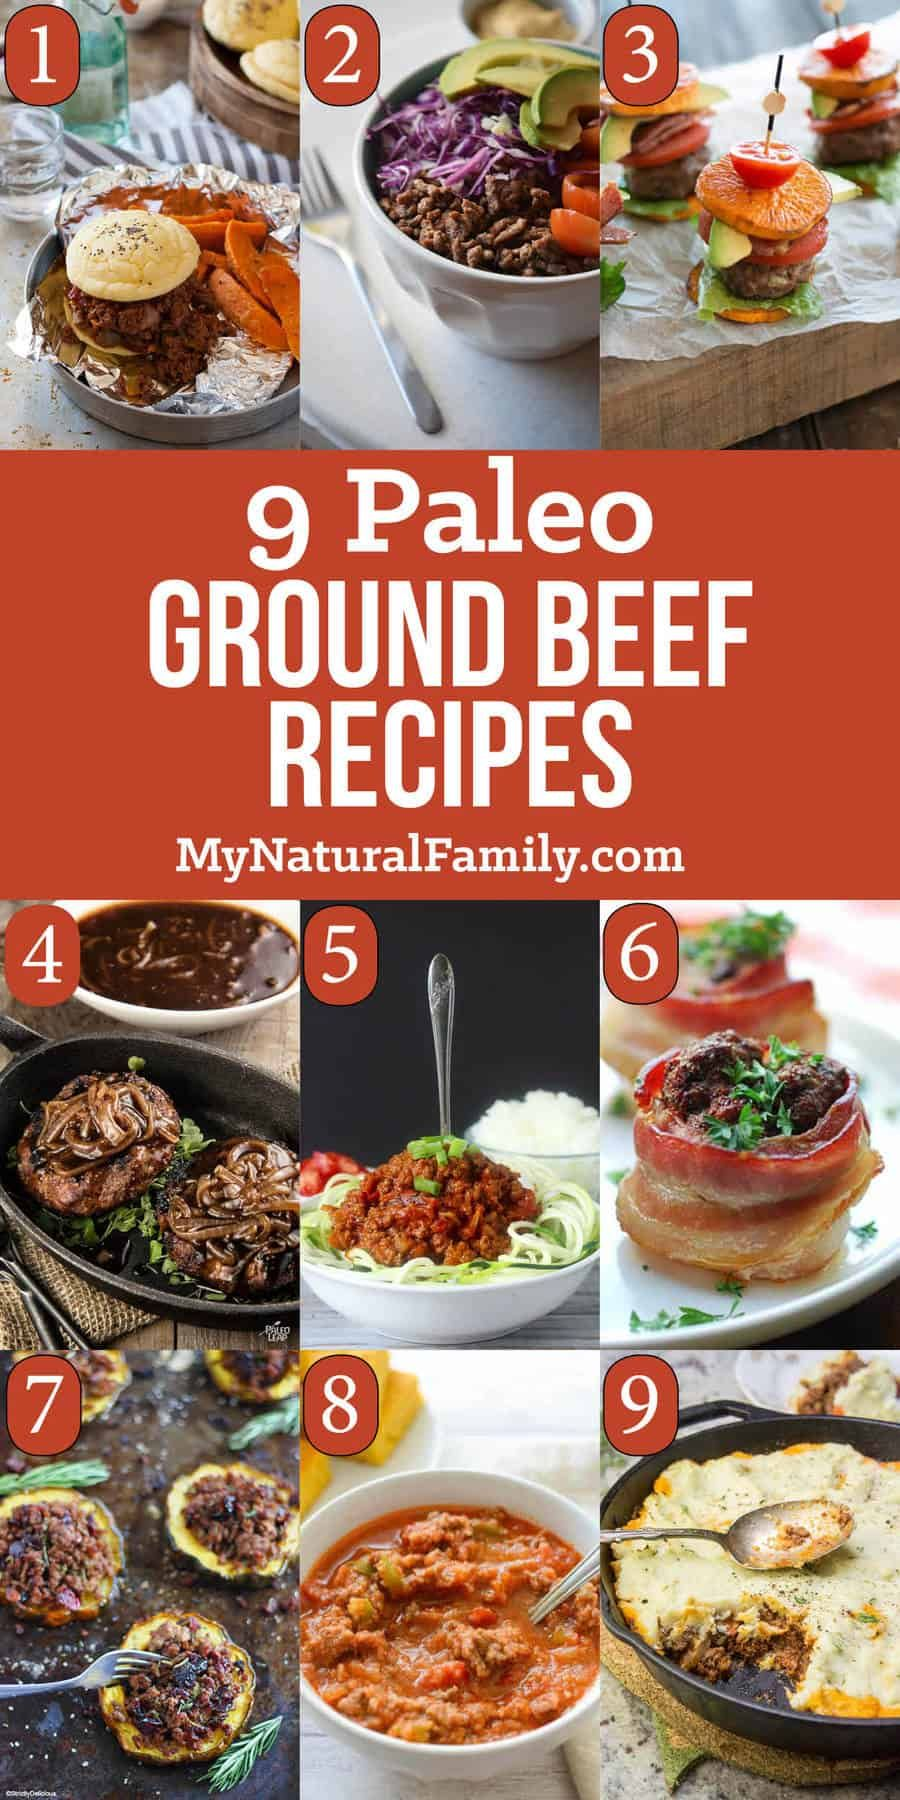 9 Paleo Ground Beef Recipes For Inexpensive Meals My Natural Family Ground Beef Paleo Recipes Paleo Beef Recipes Ground Beef Recipes